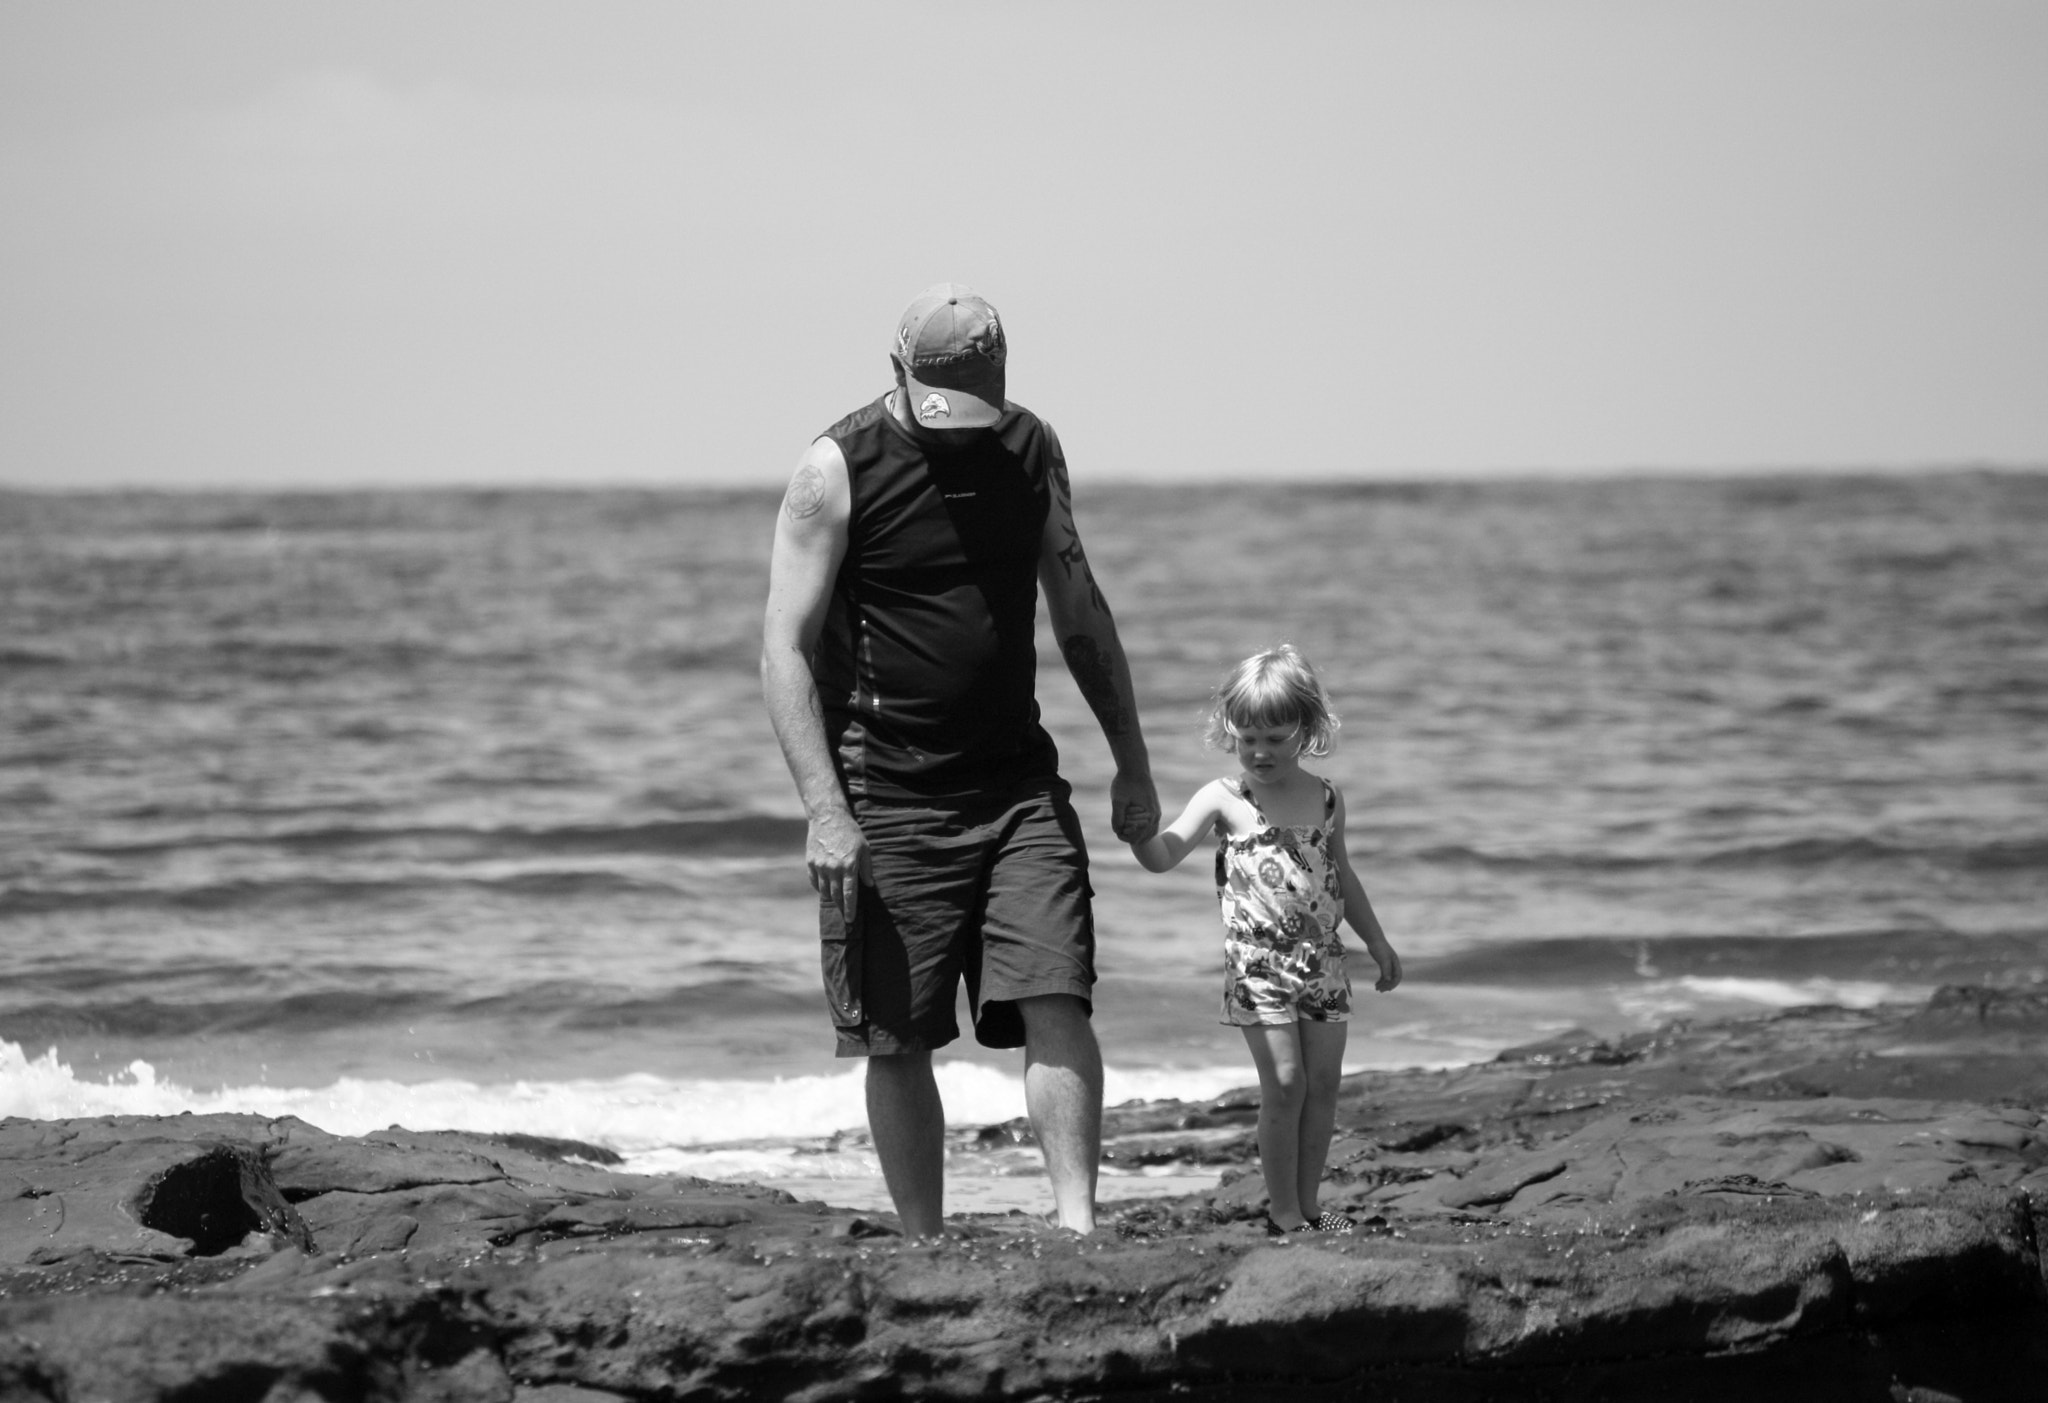 Photograph Daddys little girl by krittadee on 500px